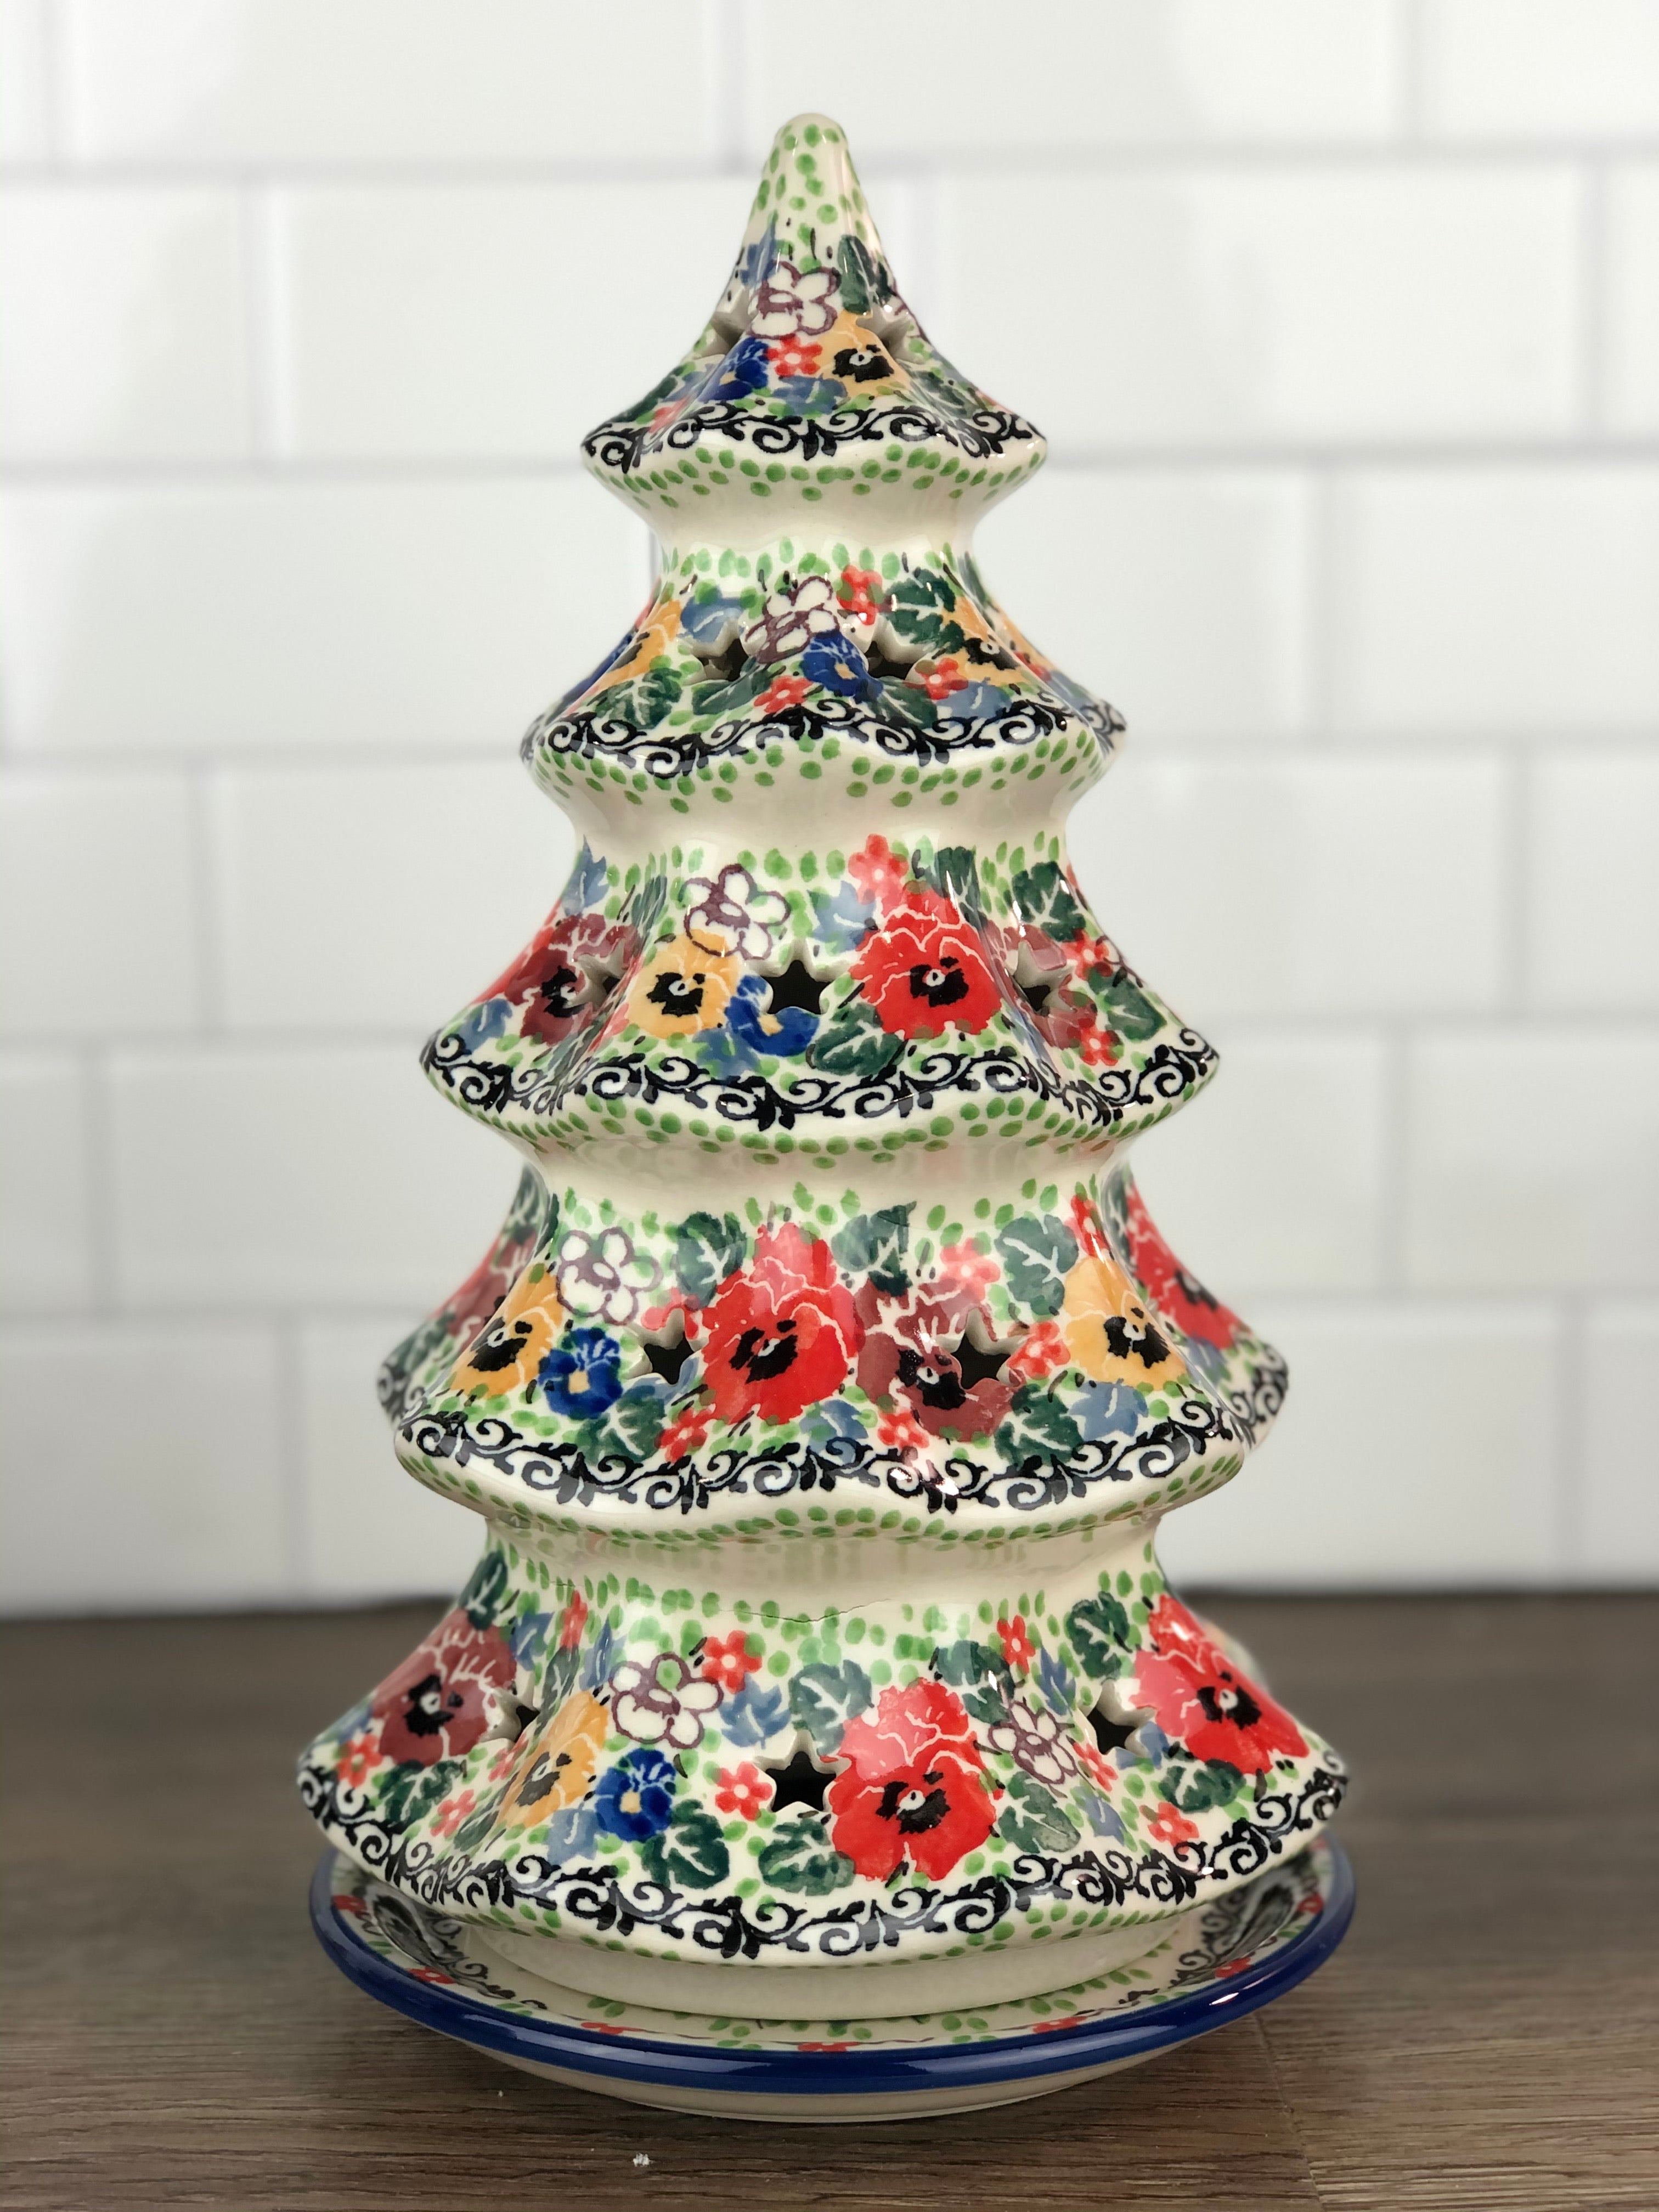 XL Unikat Christmas Tree - Shape C58 - Pattern U3638